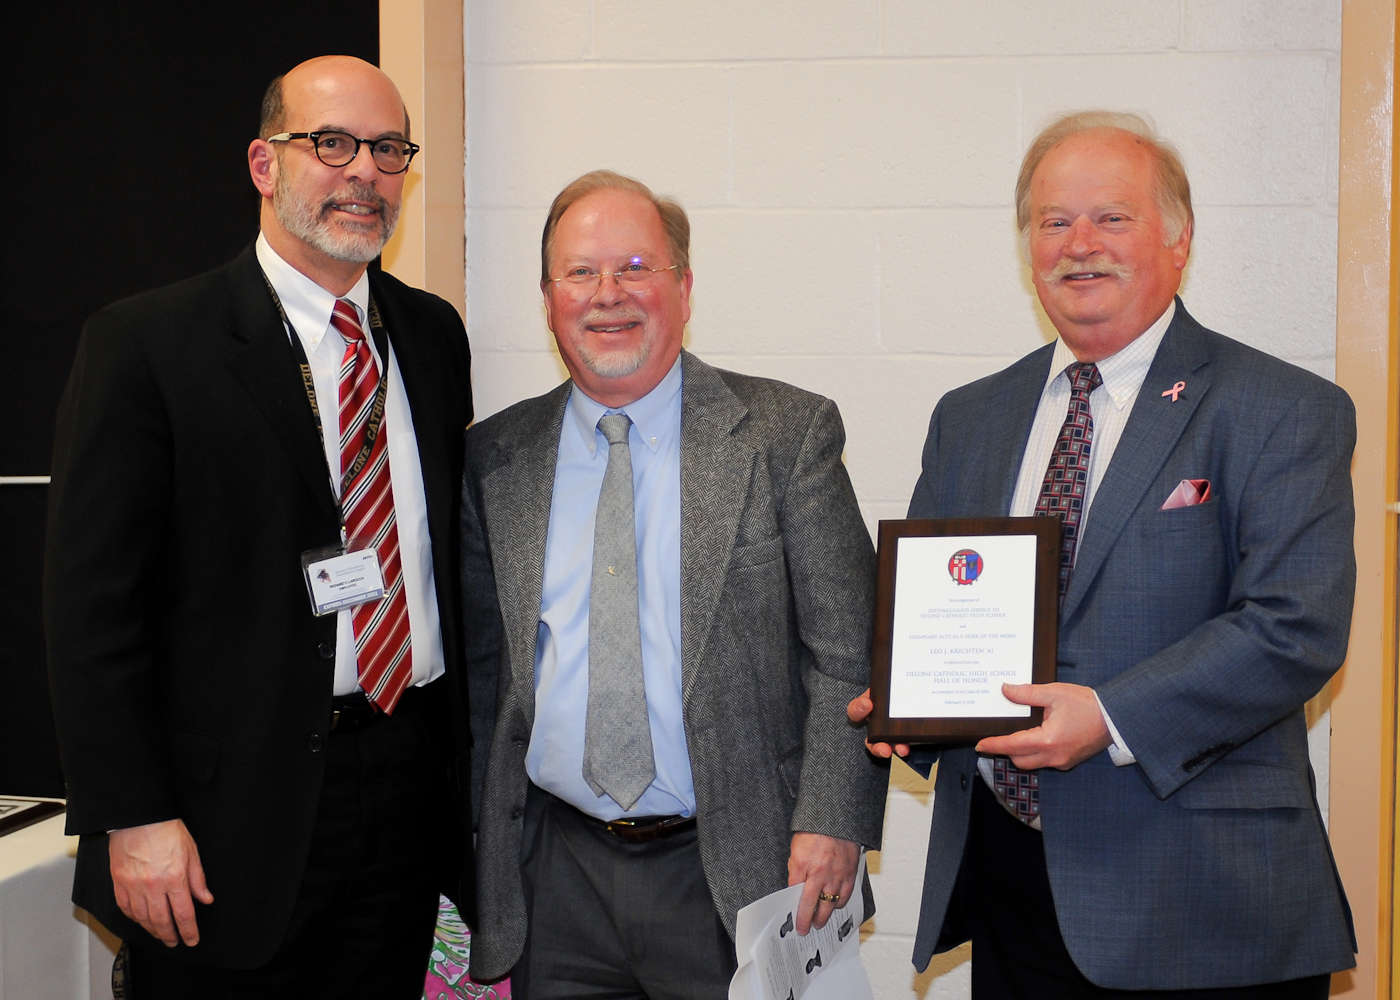 Richard C. Krichten '70 (center) and Michael A. Krichten '72 (right) accept induction into the Delone Catholic Hall of Honor on behalf of their father, Leo J. Krichten '41.